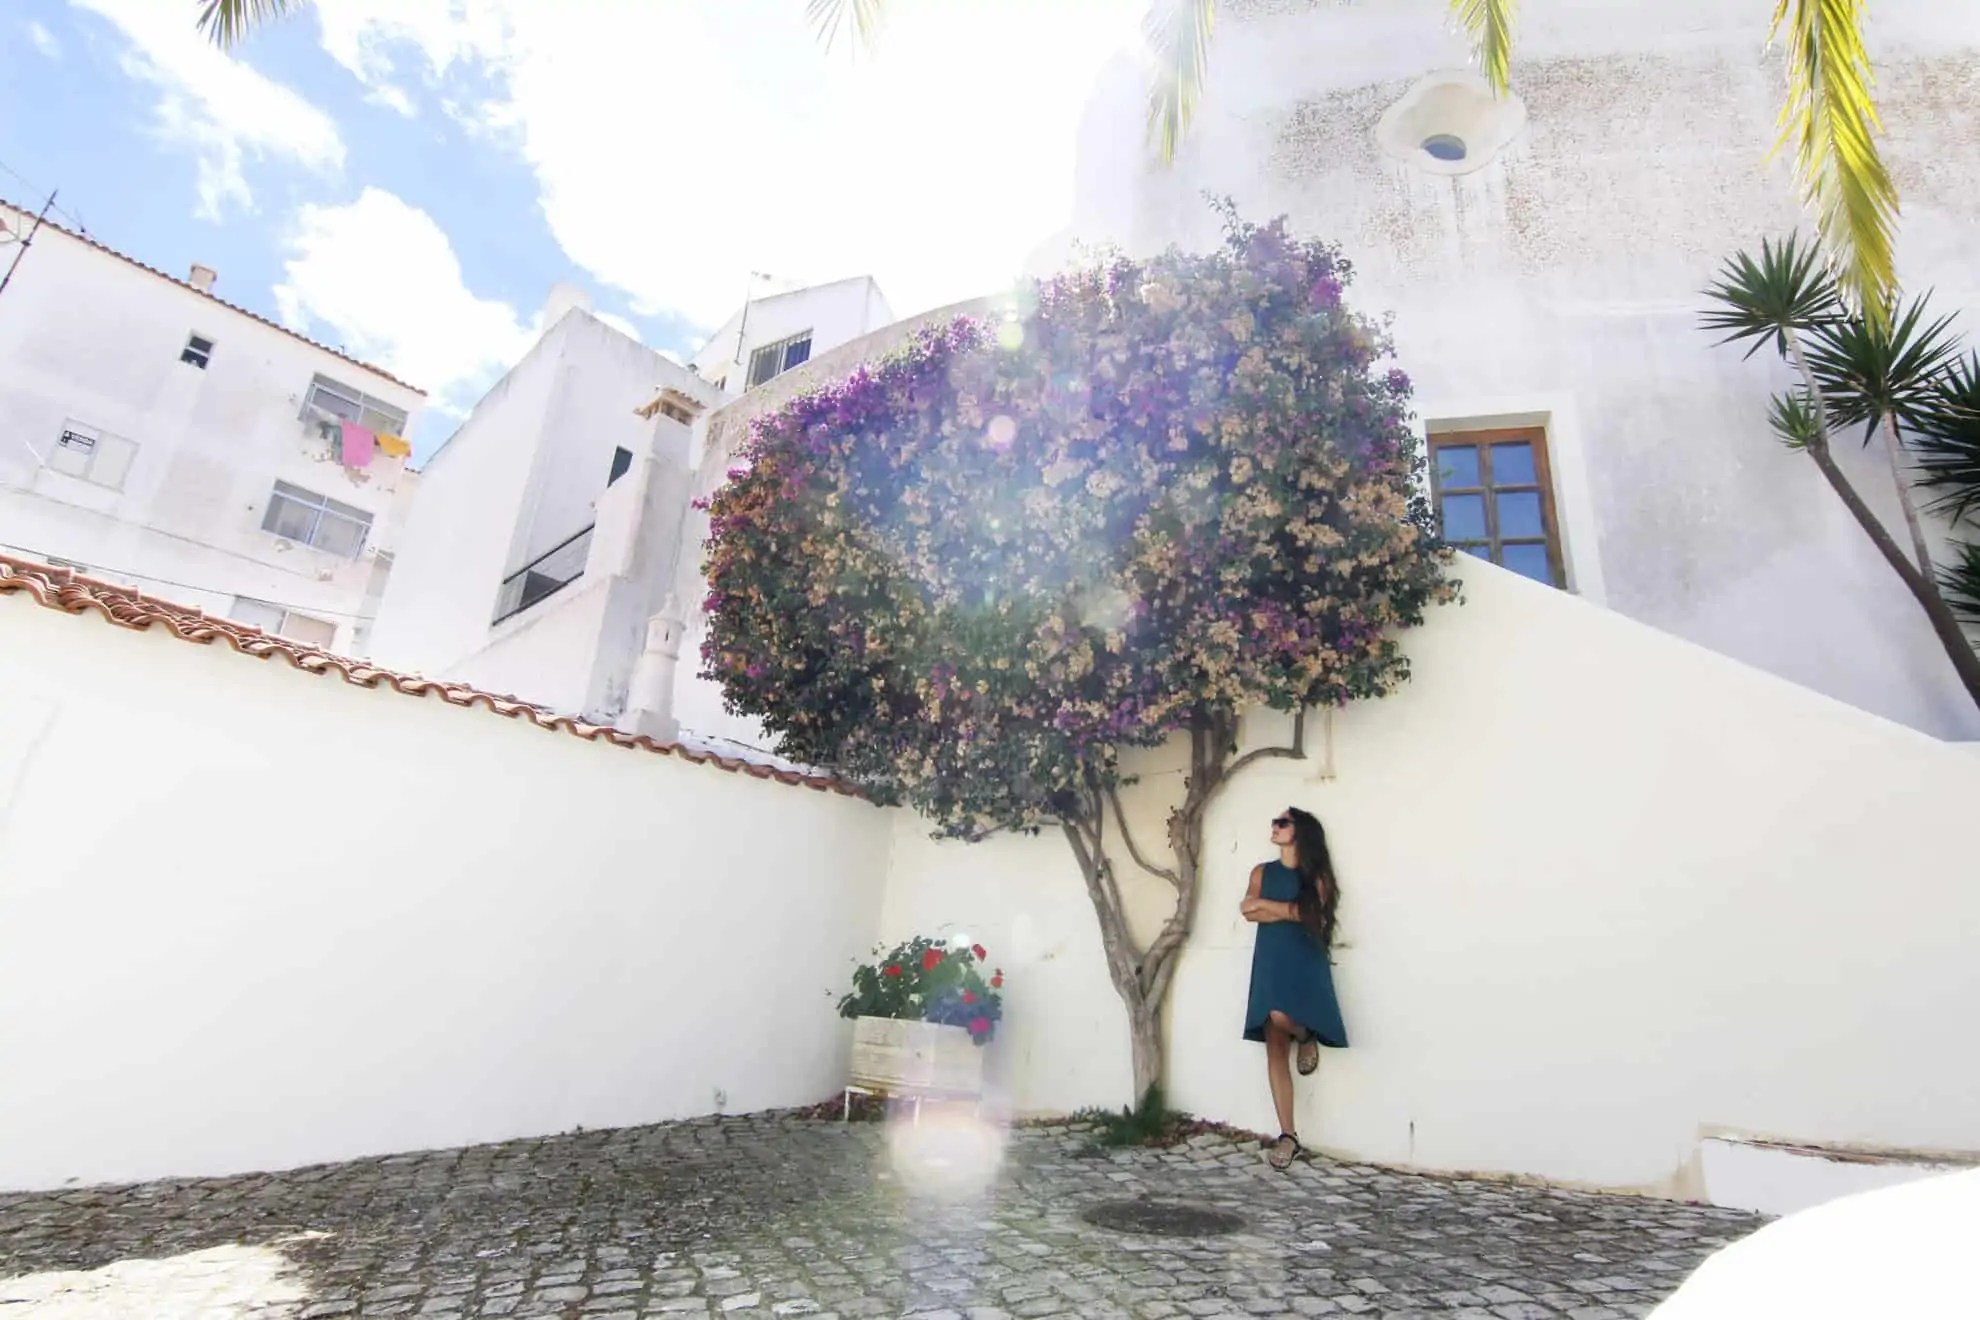 Tivoli Lagos Closing What To See Do And Where To Stay In Lagos Portugal The